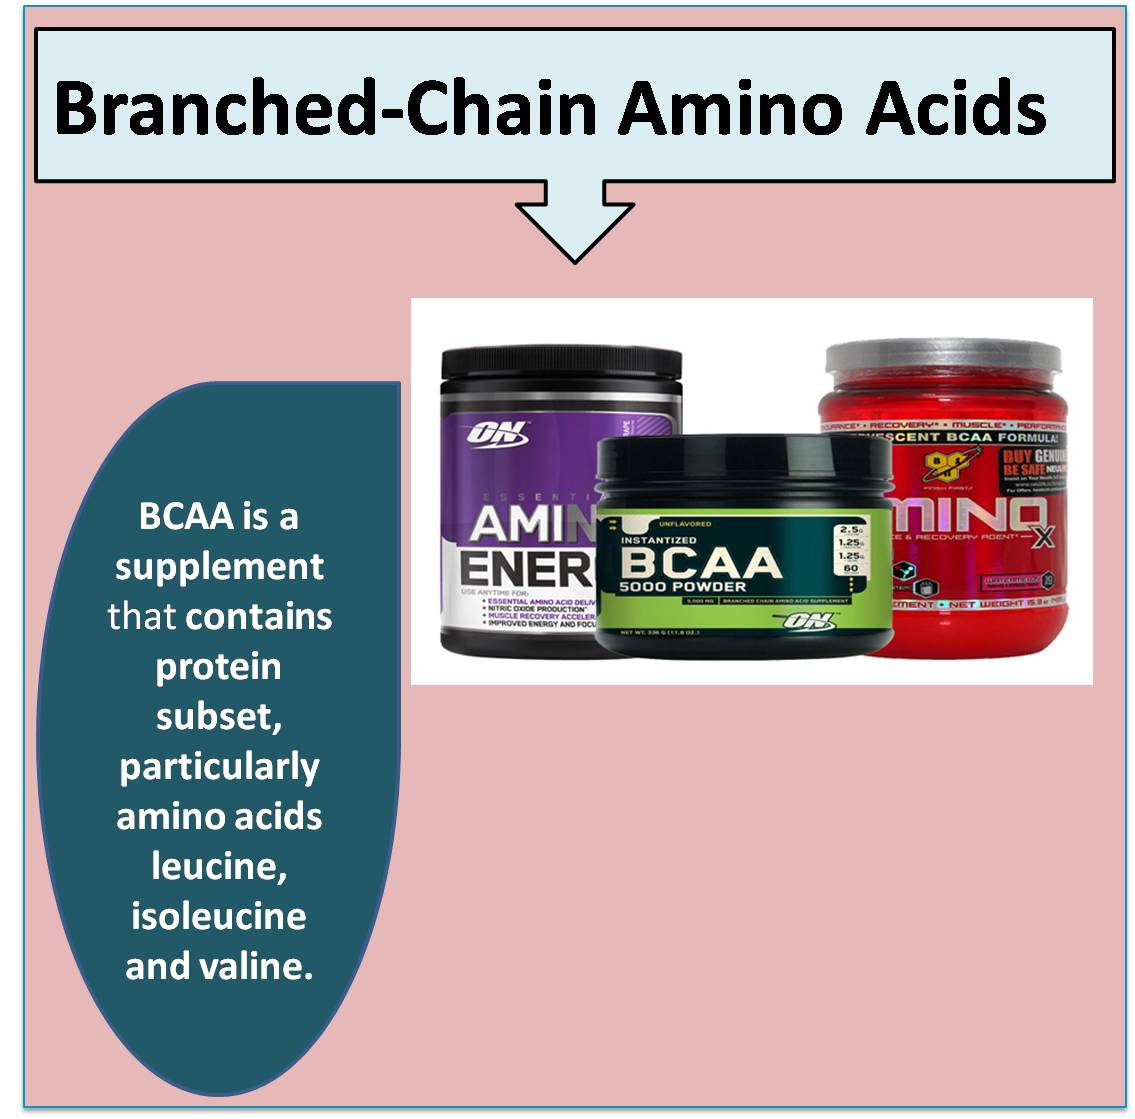 amino acid supplements benefits benefits of amino acids khelmart org it s all about 17711